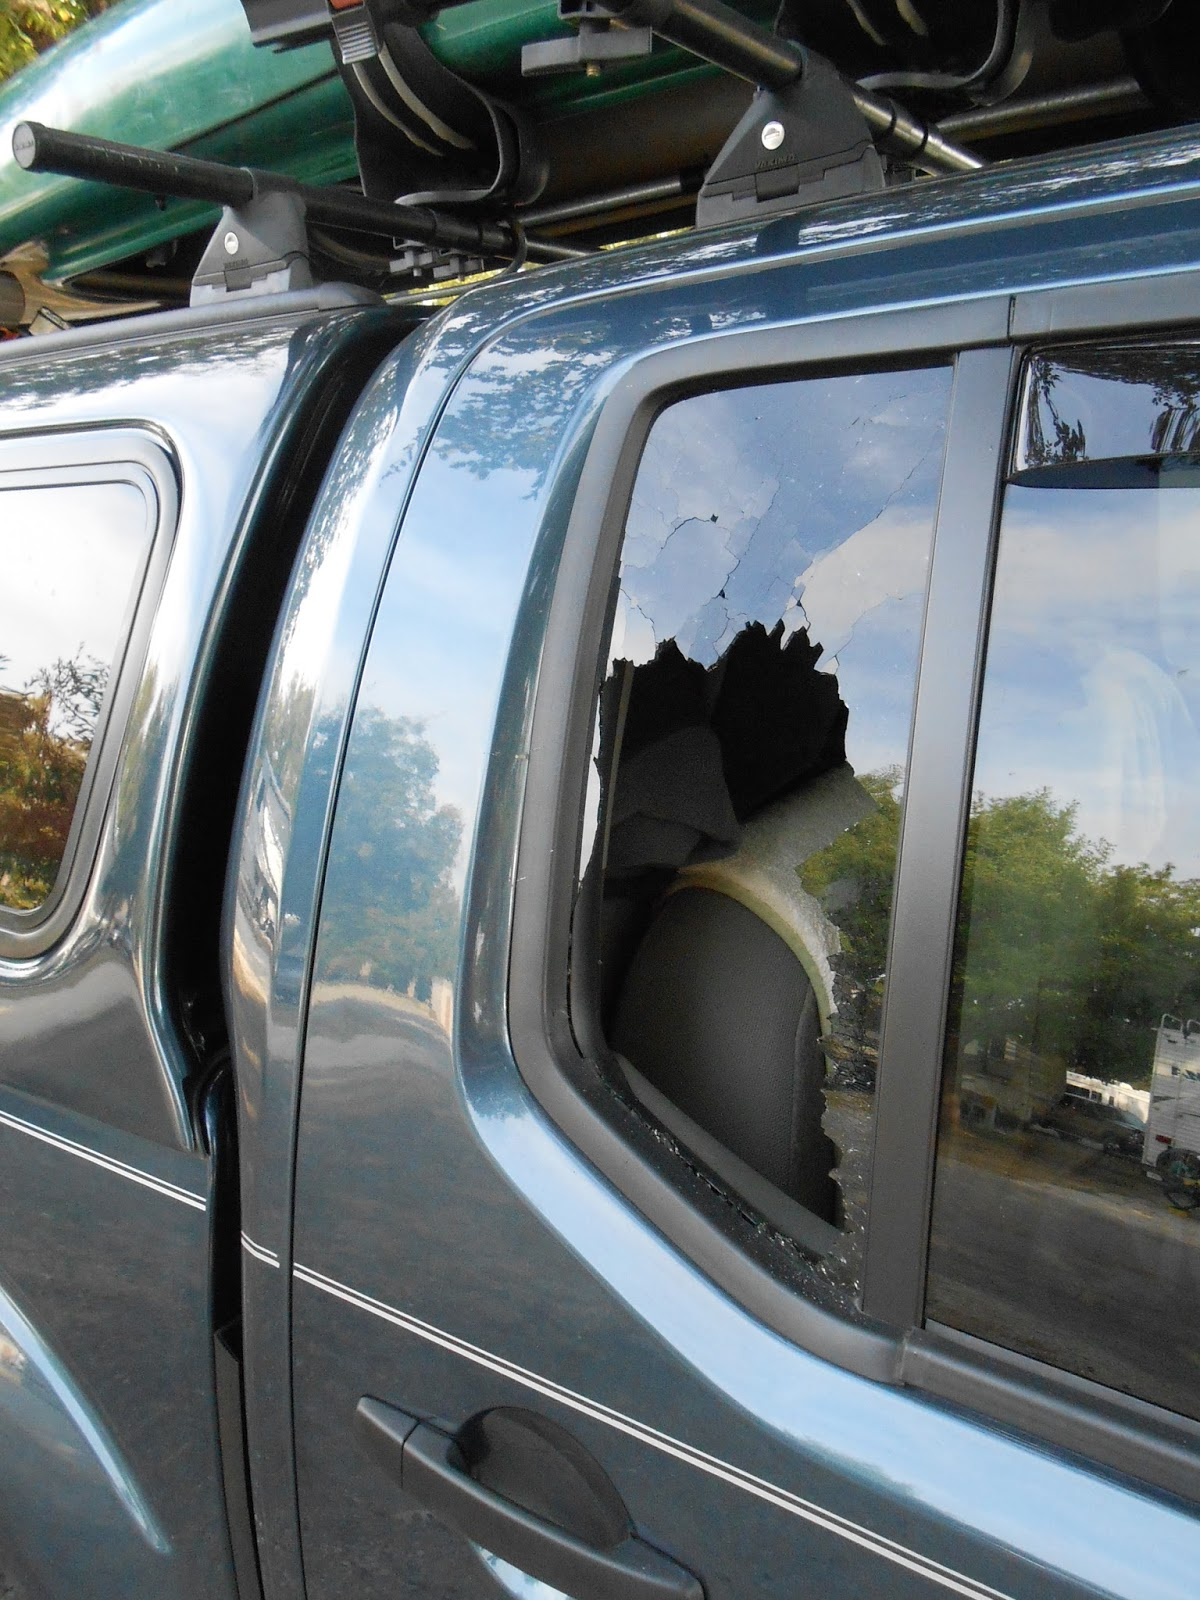 how to break a car window with a screwdriver